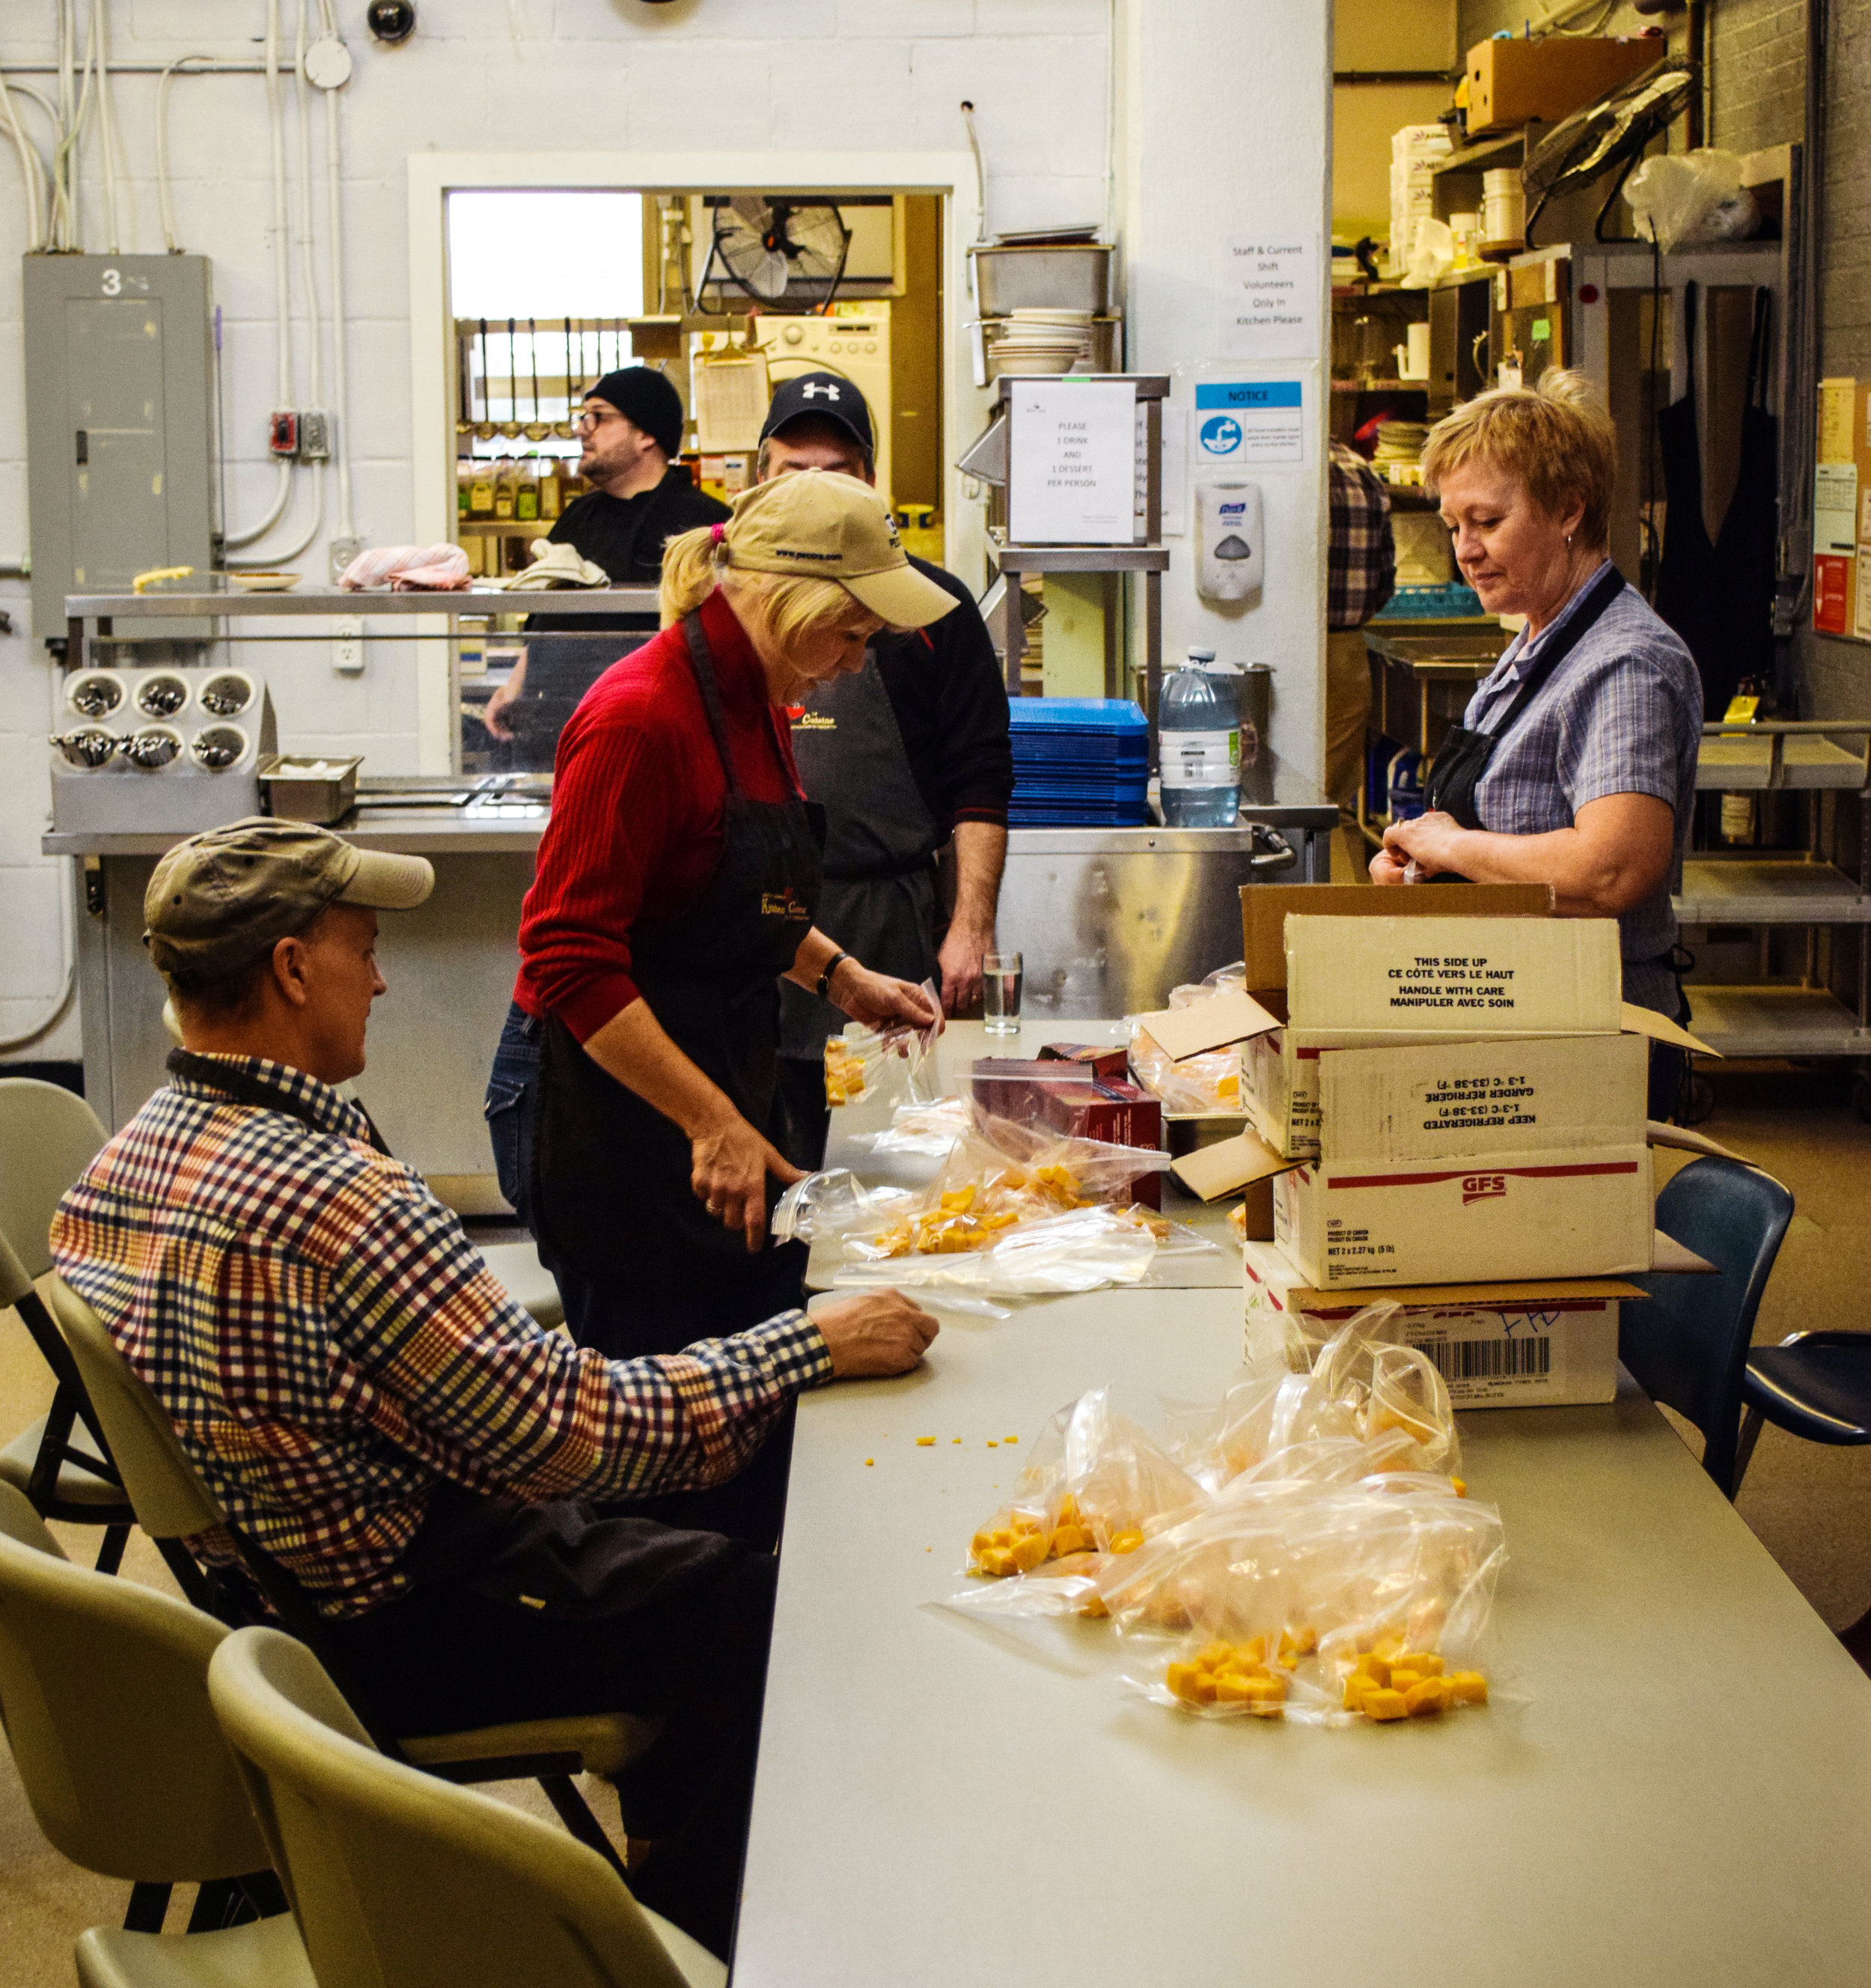 Volunteering with the Fredericton Community Kitchens is an enjoyable and rewarding experience that many volunteers say they will never forget. But for new volunteers, it's completely normal to have about a million questions! -